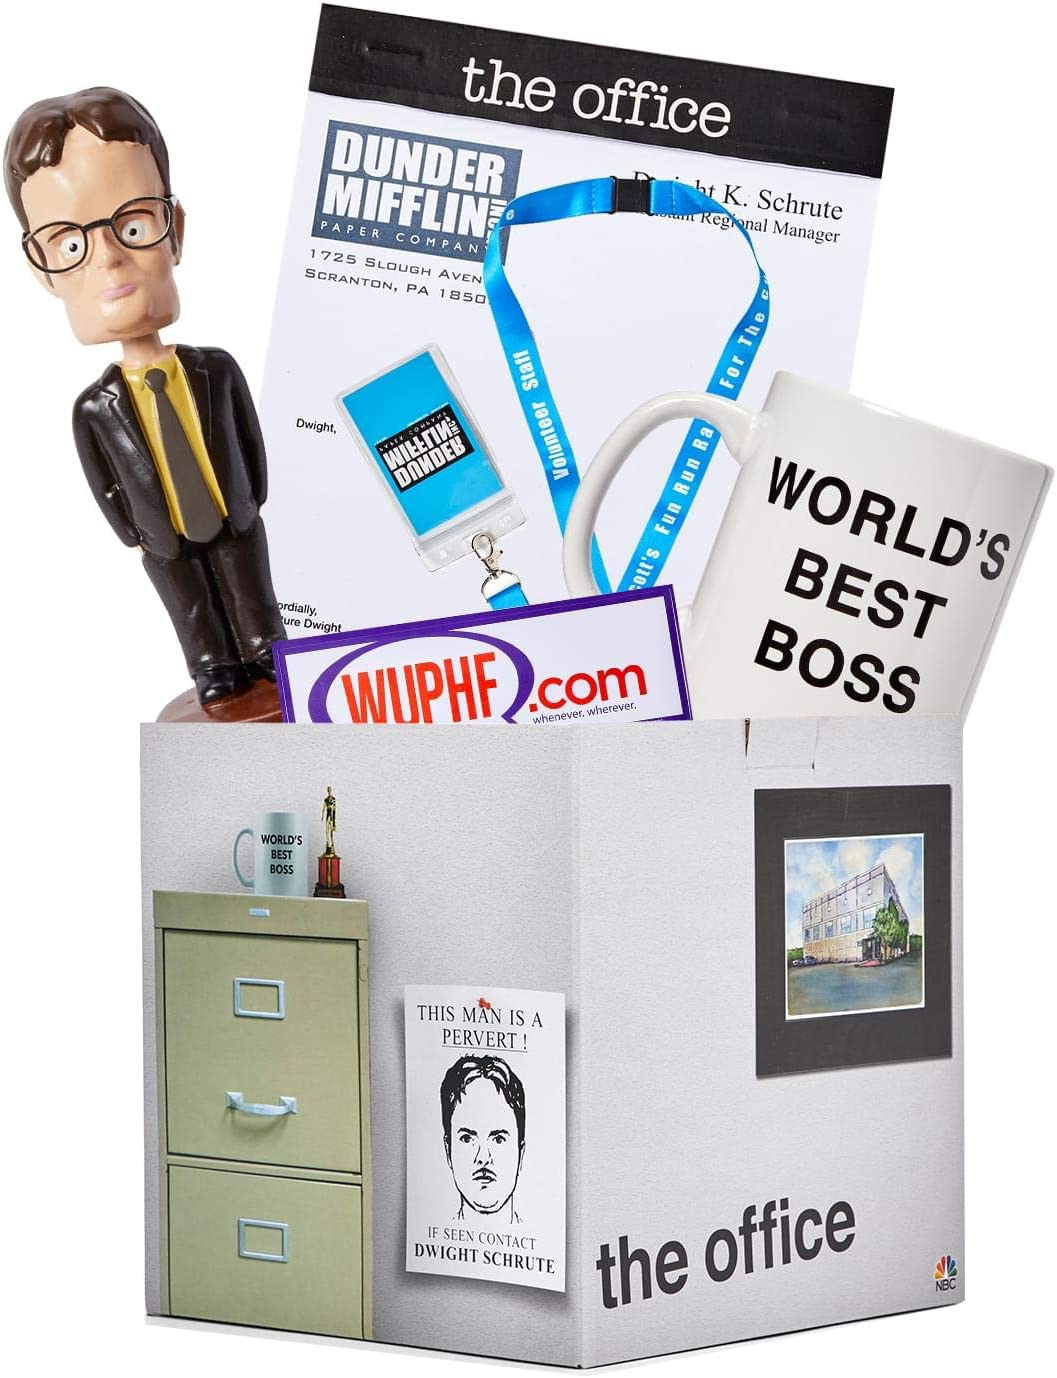 JUST FUNKY Official The Office LookSee Mystery Gift Collectors Box - Includes Bobblehead, Mug, Lanyard, and More - Exclusive Fan Toy Collectibles Set for Family and Friends - Licensed Merchandise